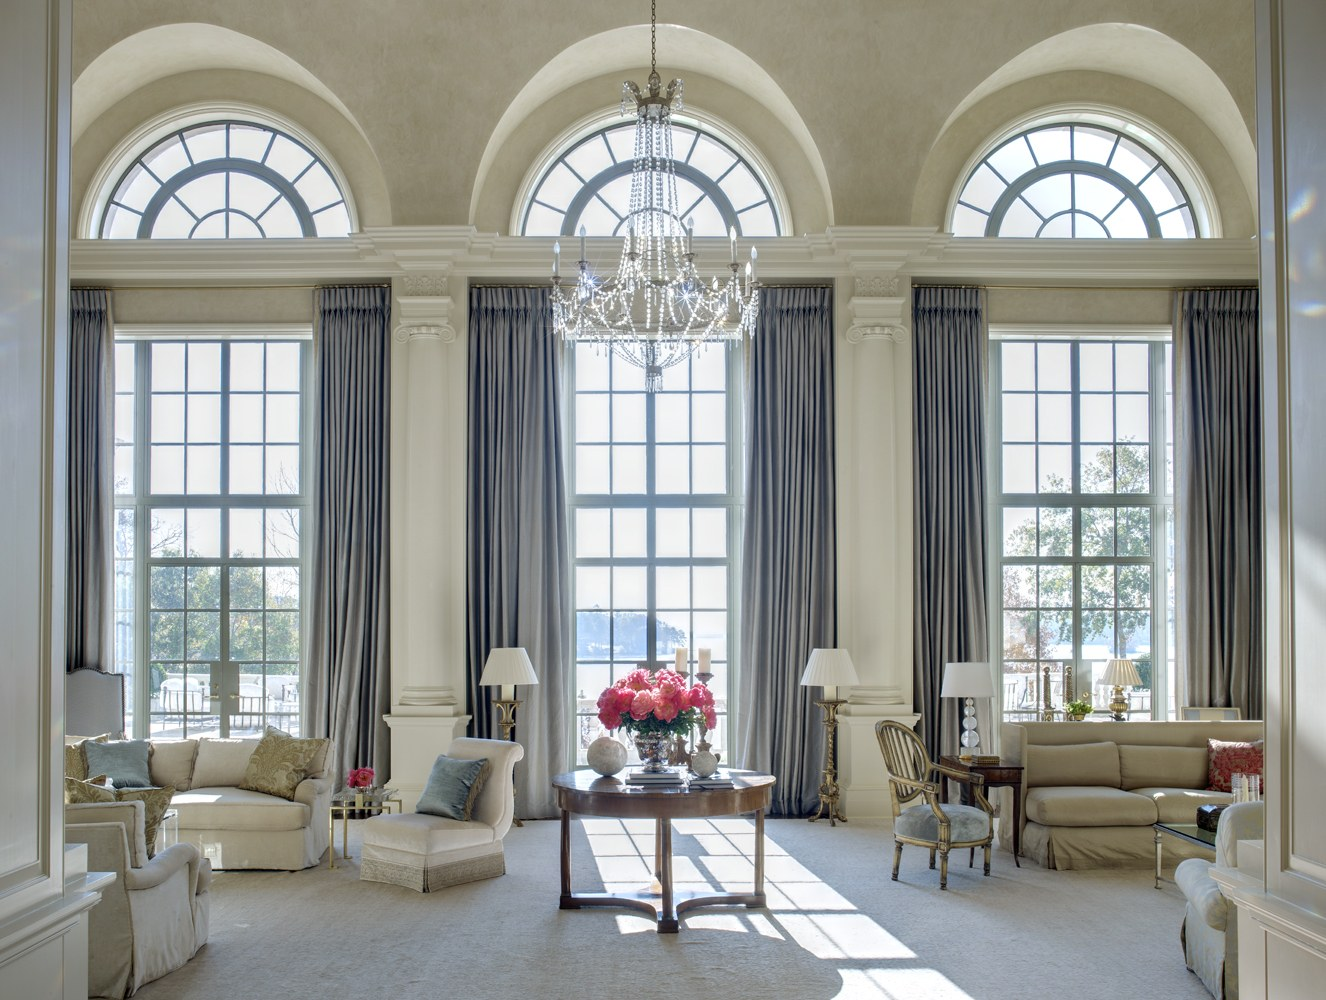 9 Stunning Decorating Ideas By Suzanne Kasler Interiors To Inspire You  9 Stunning Decorating Ideas By Suzanne Kasler Interiors To Inspire You 9 Stunning Decorating Ideas By Suzanne Kasler Interiors To Inspire You 2